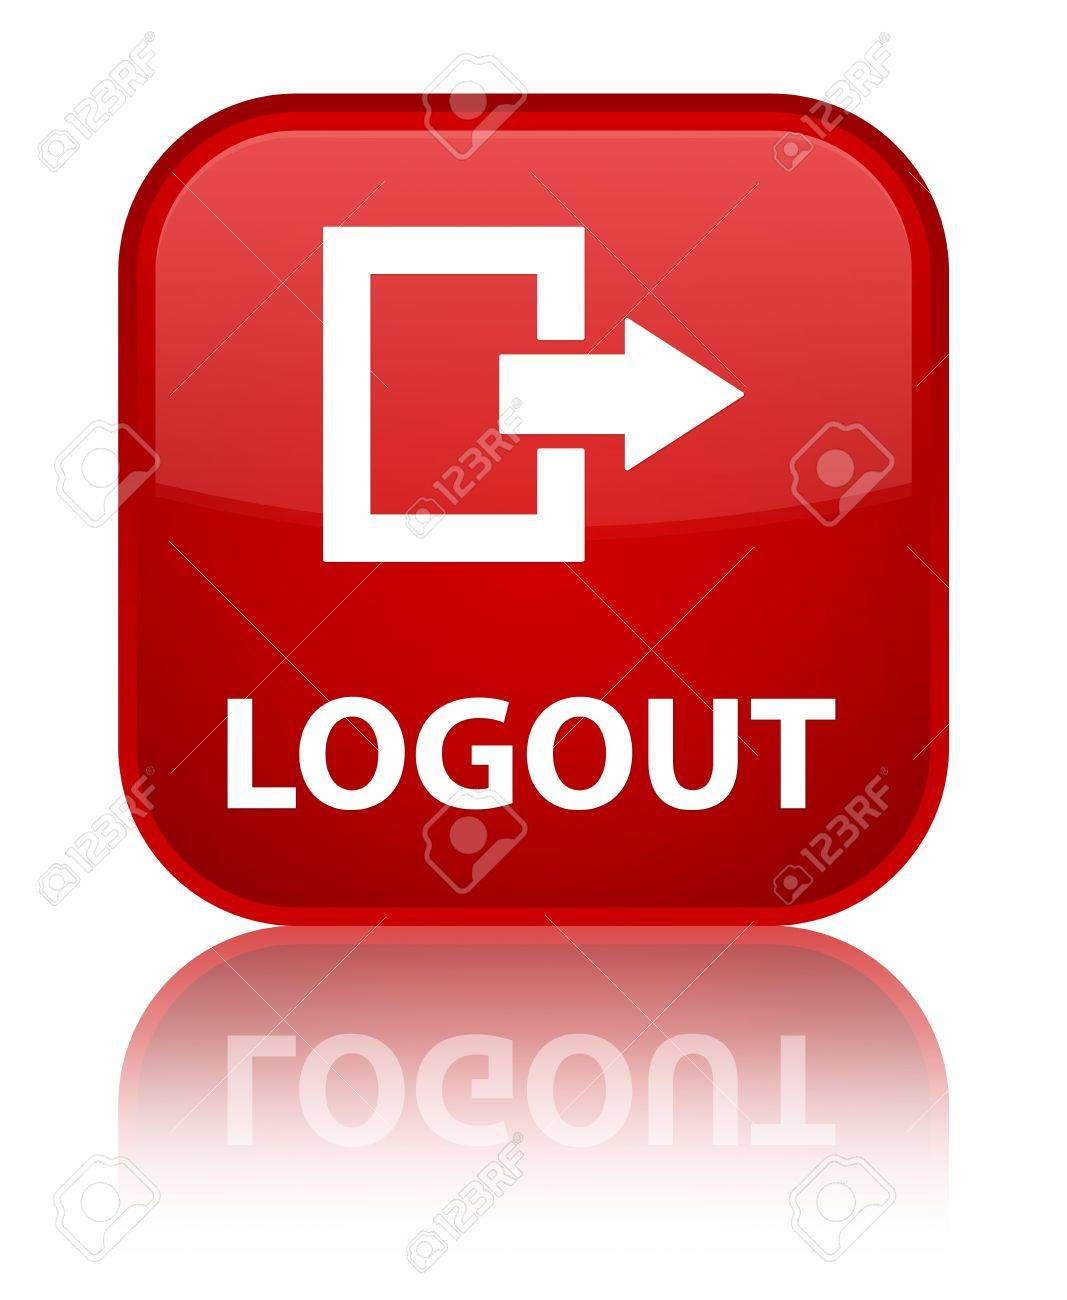 Logout glossy red reflected square button Stock Photo - 16624446